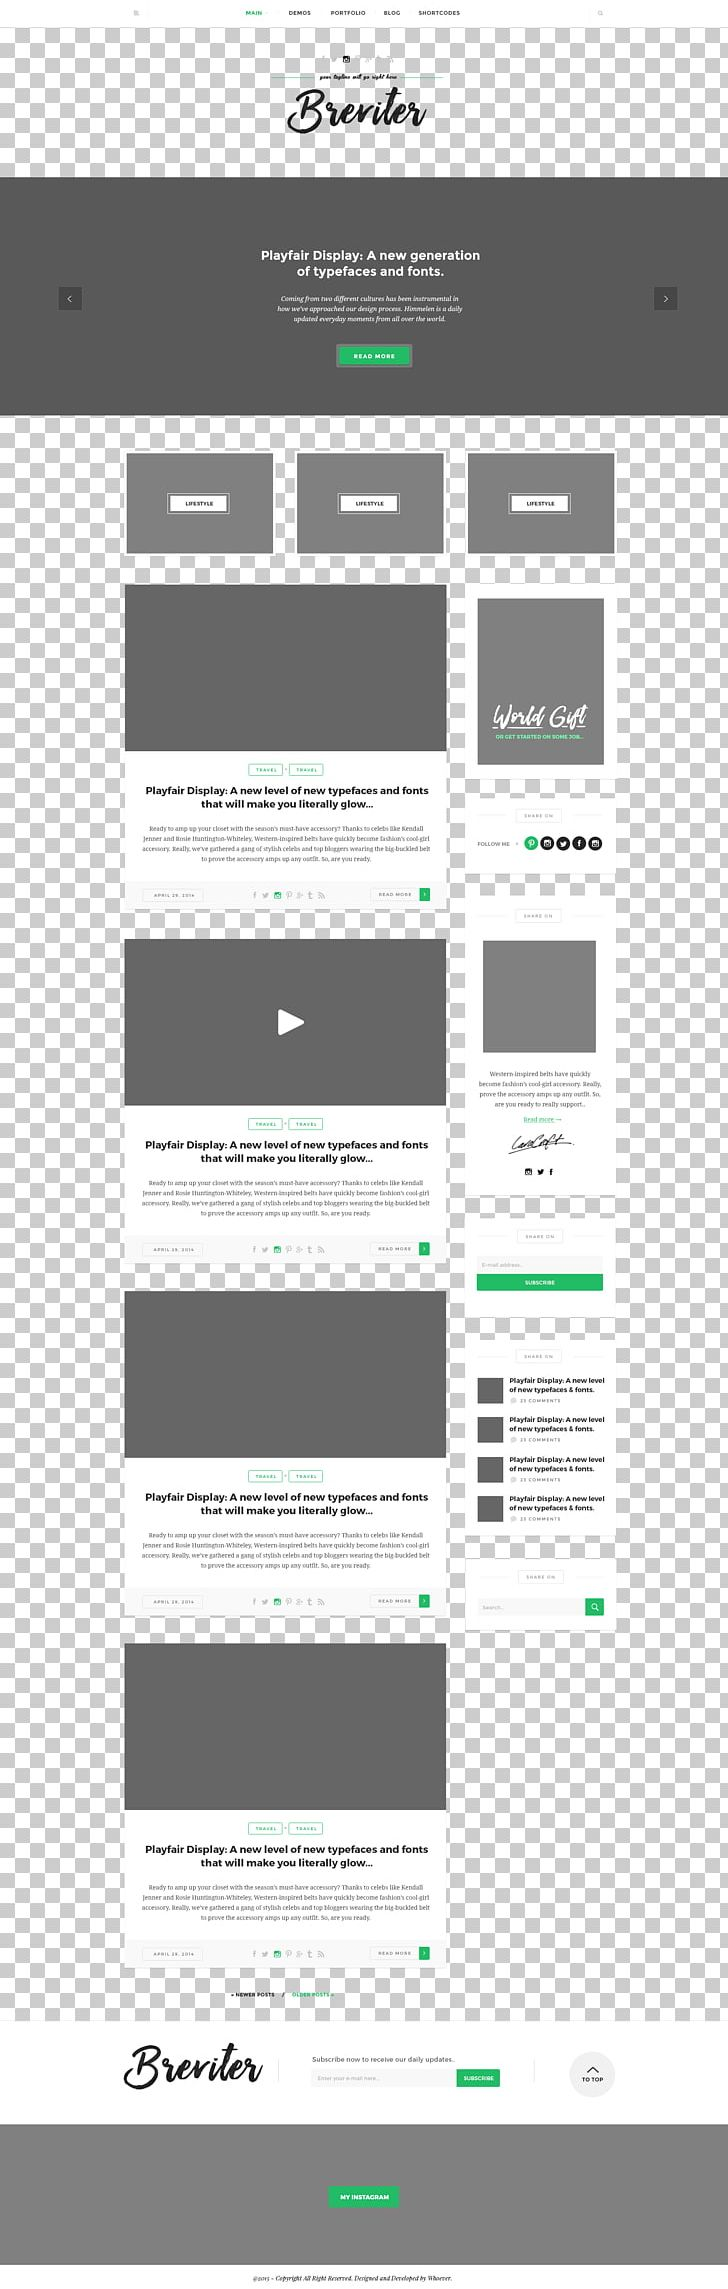 Web Template Website Web Page PNG, Clipart, Art, Brand, Design, Grayscale, Landing Page Free PNG Download